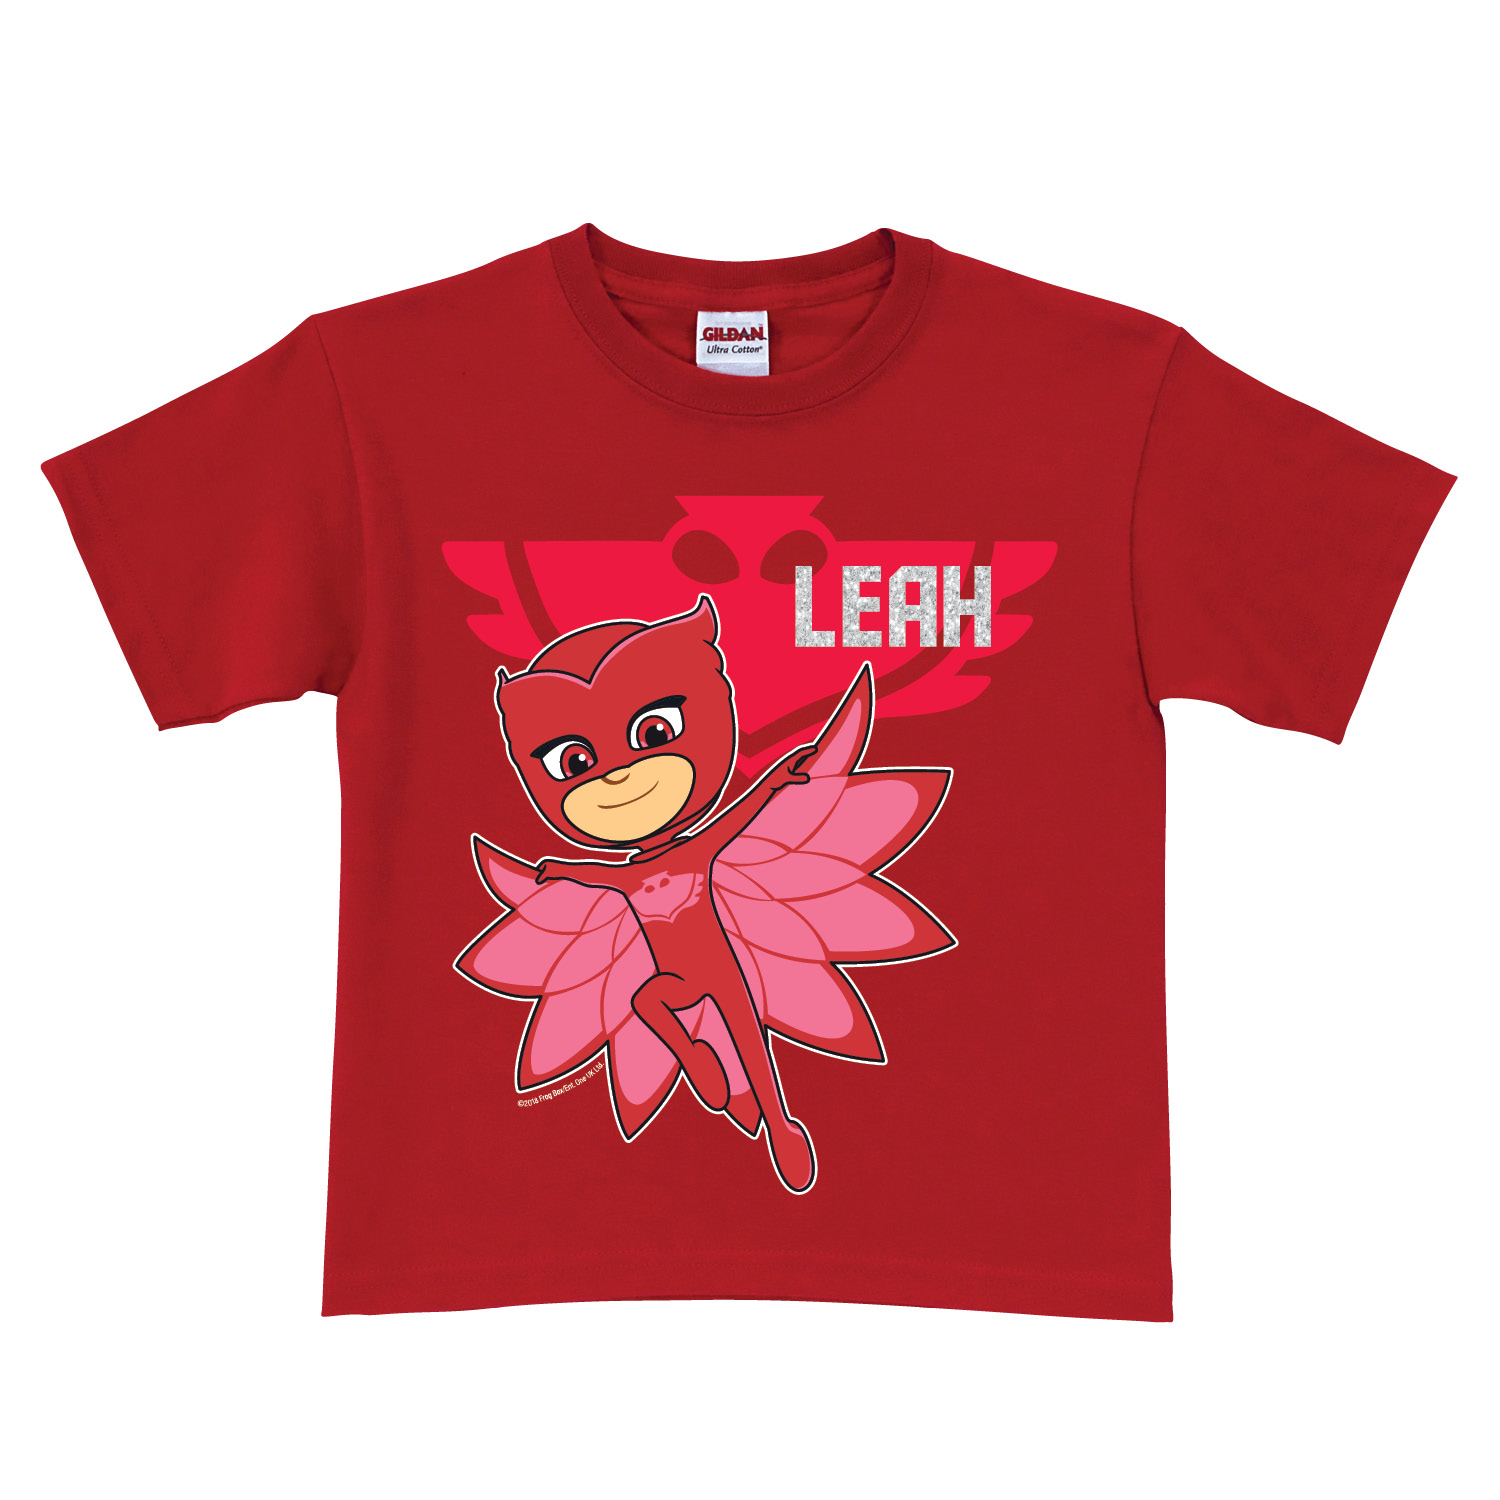 Owlette Red Youth T-Shirt – S, M, L, XL